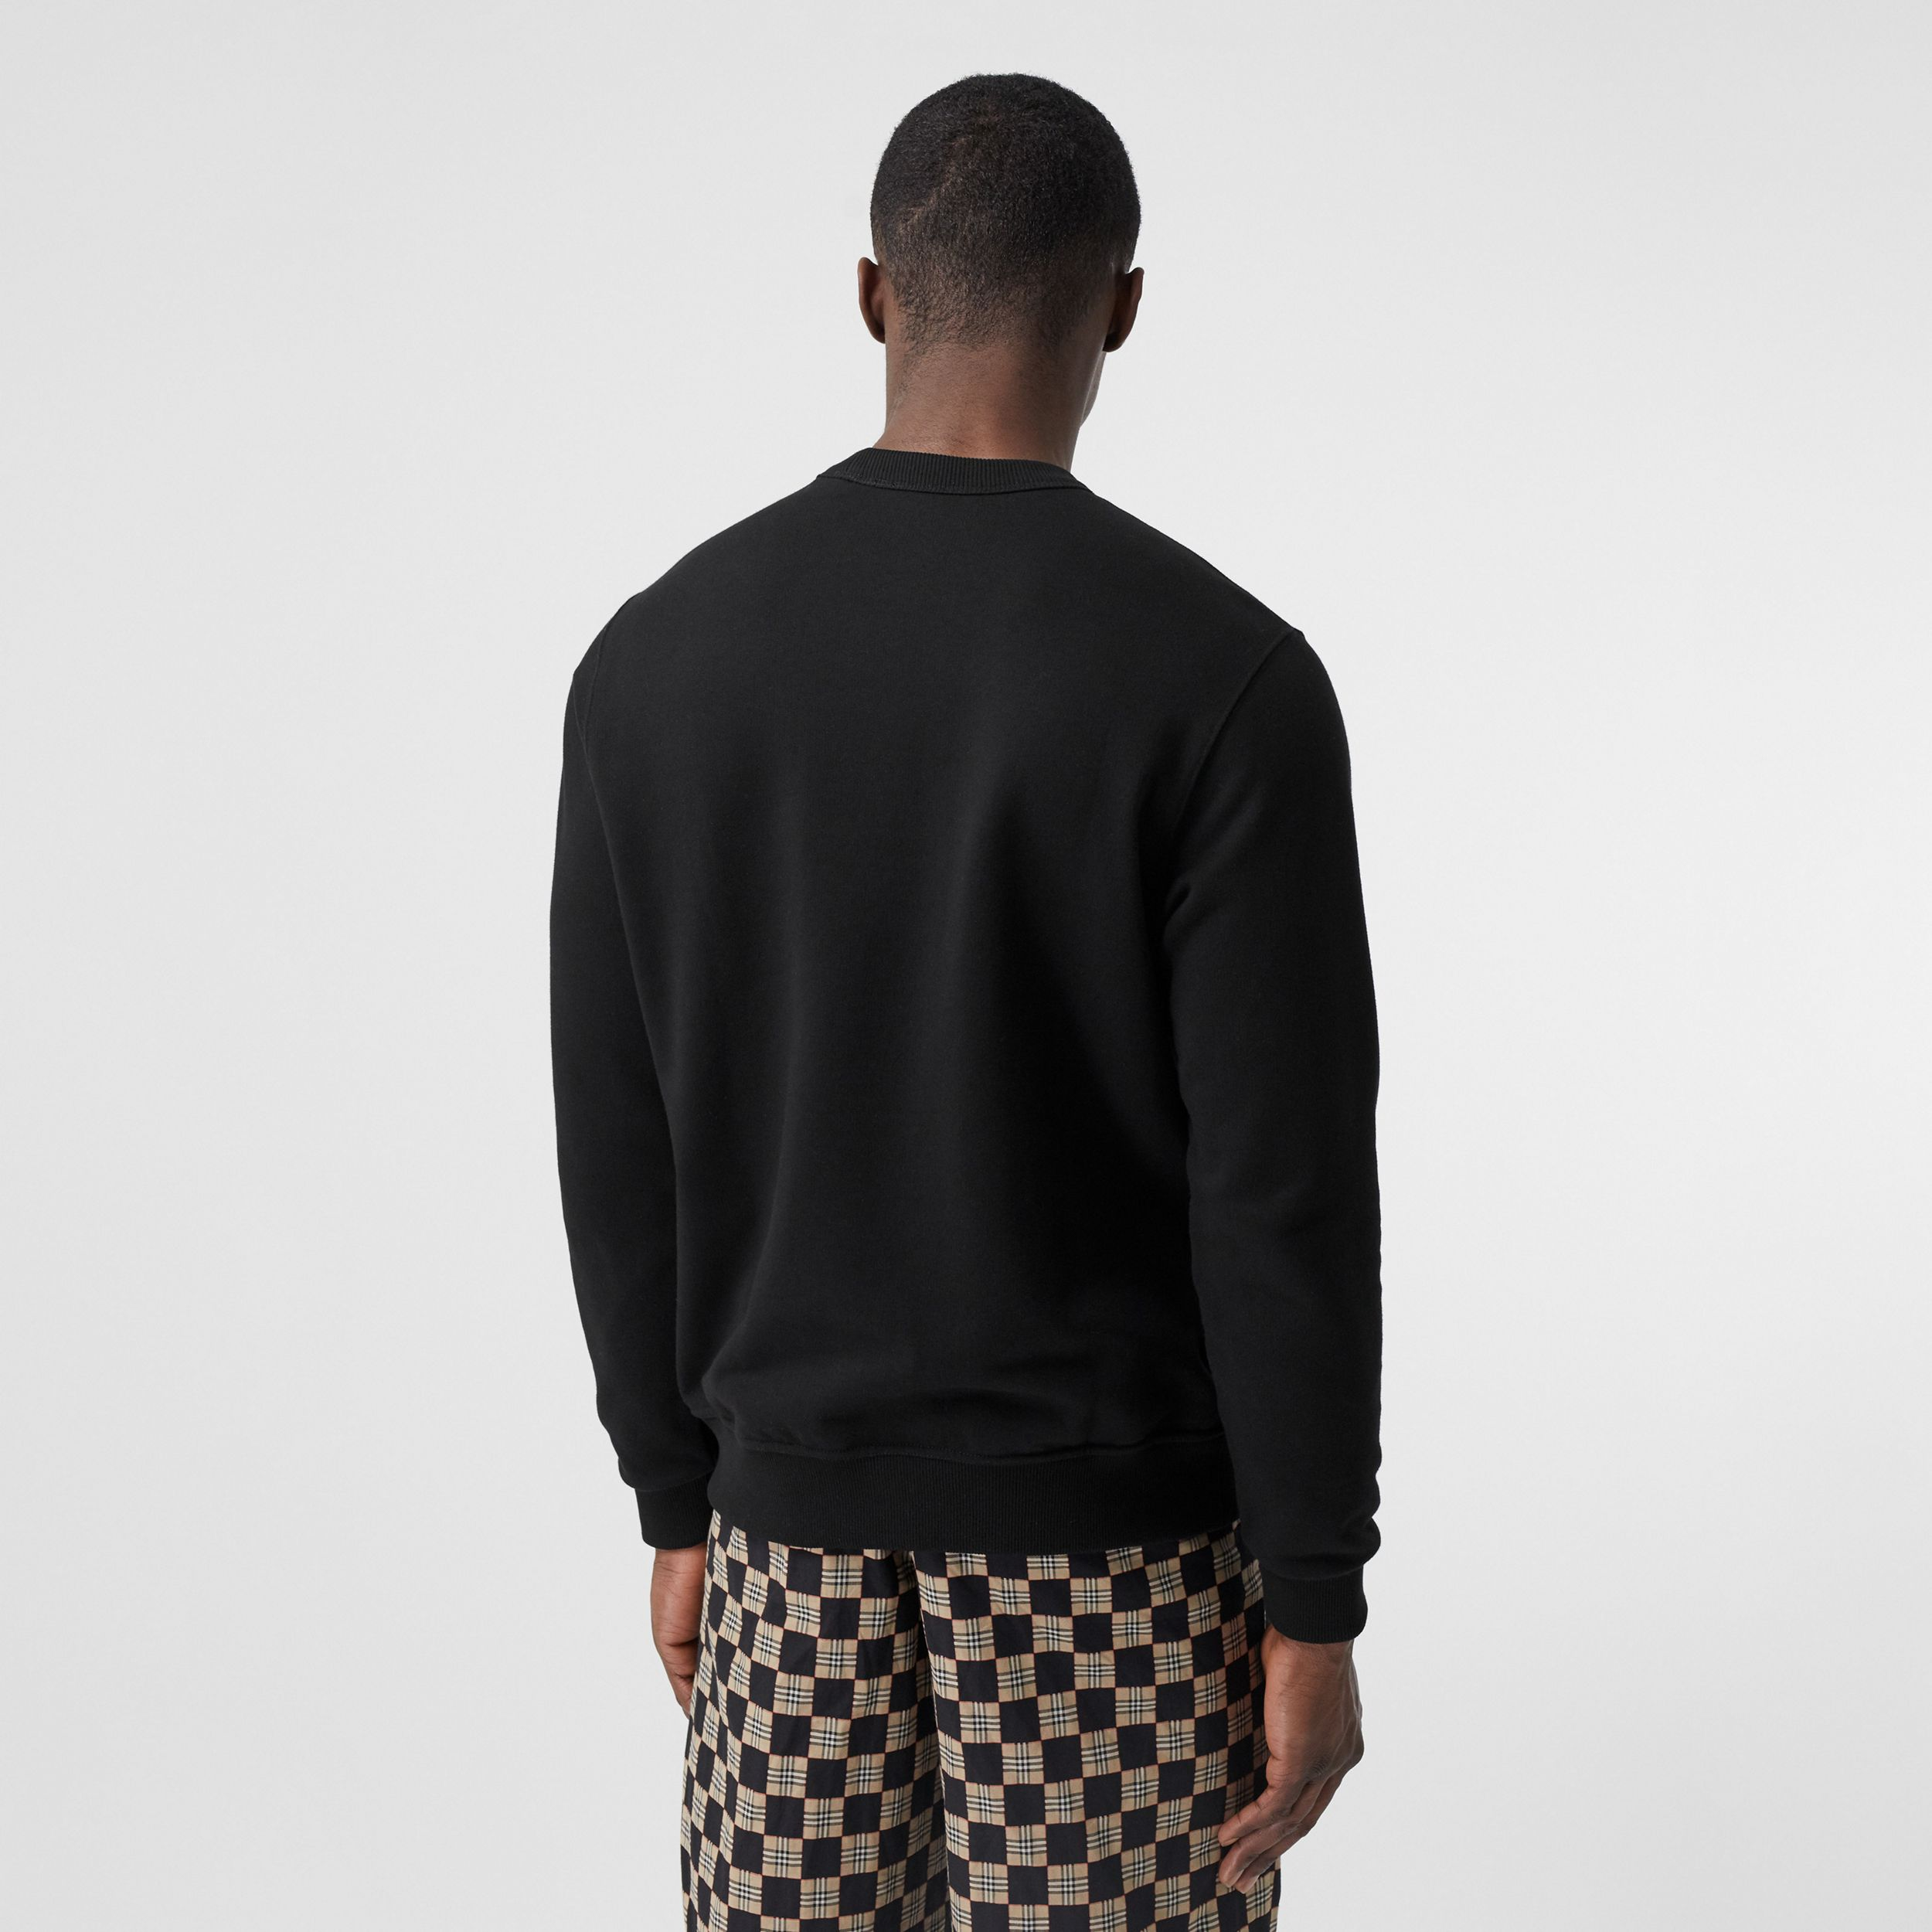 Monogram Motif Cotton Sweatshirt in Black - Men | Burberry United States - 3